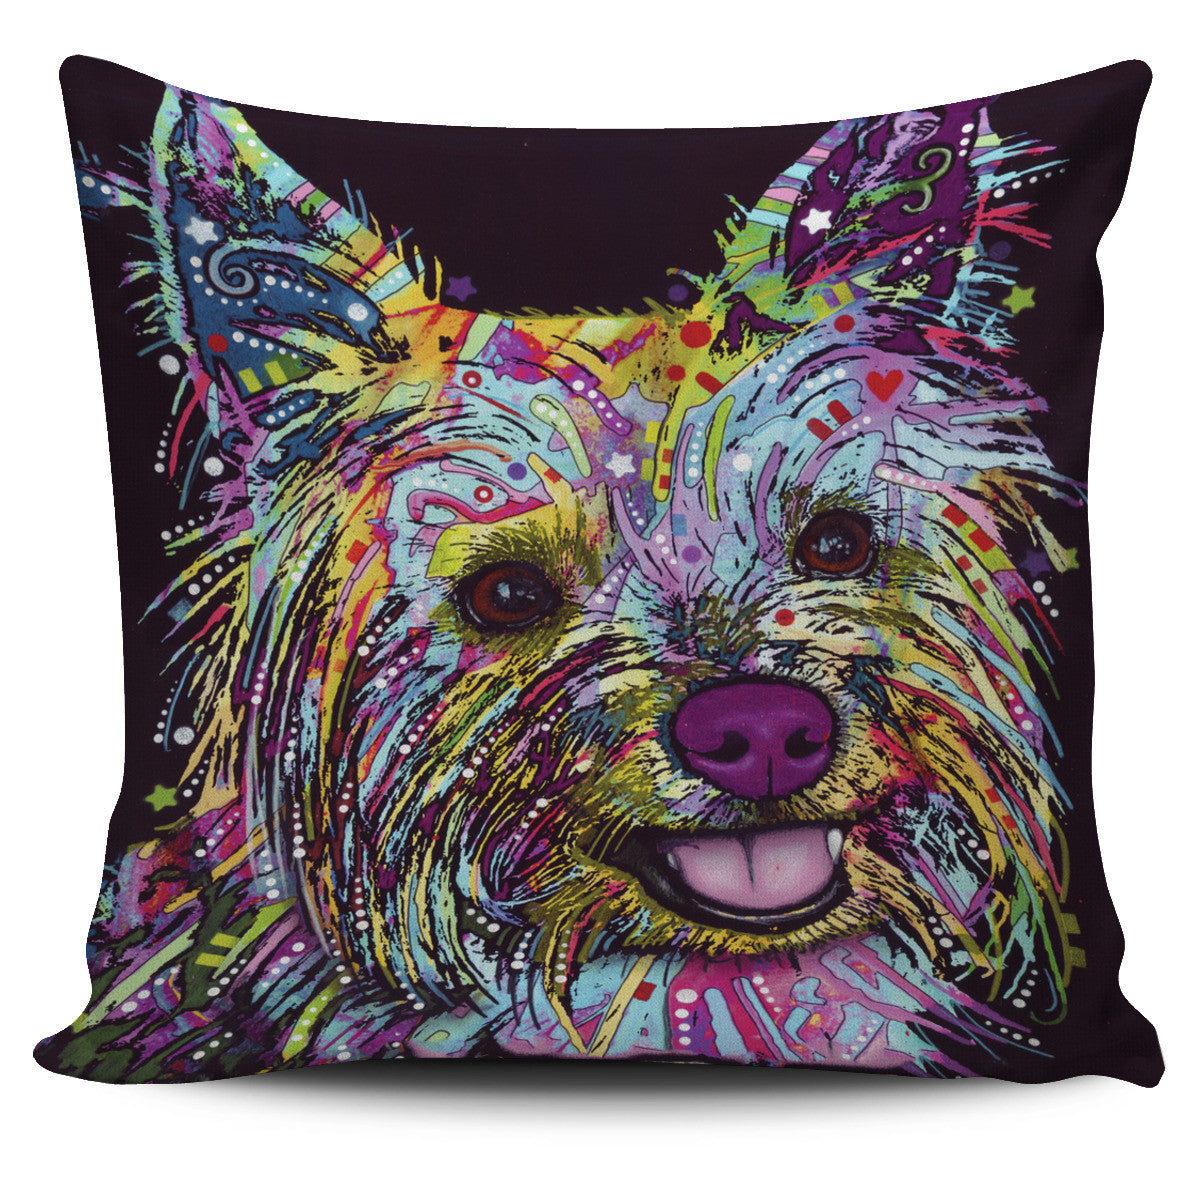 Yorkie Series Pillow Covers Offer